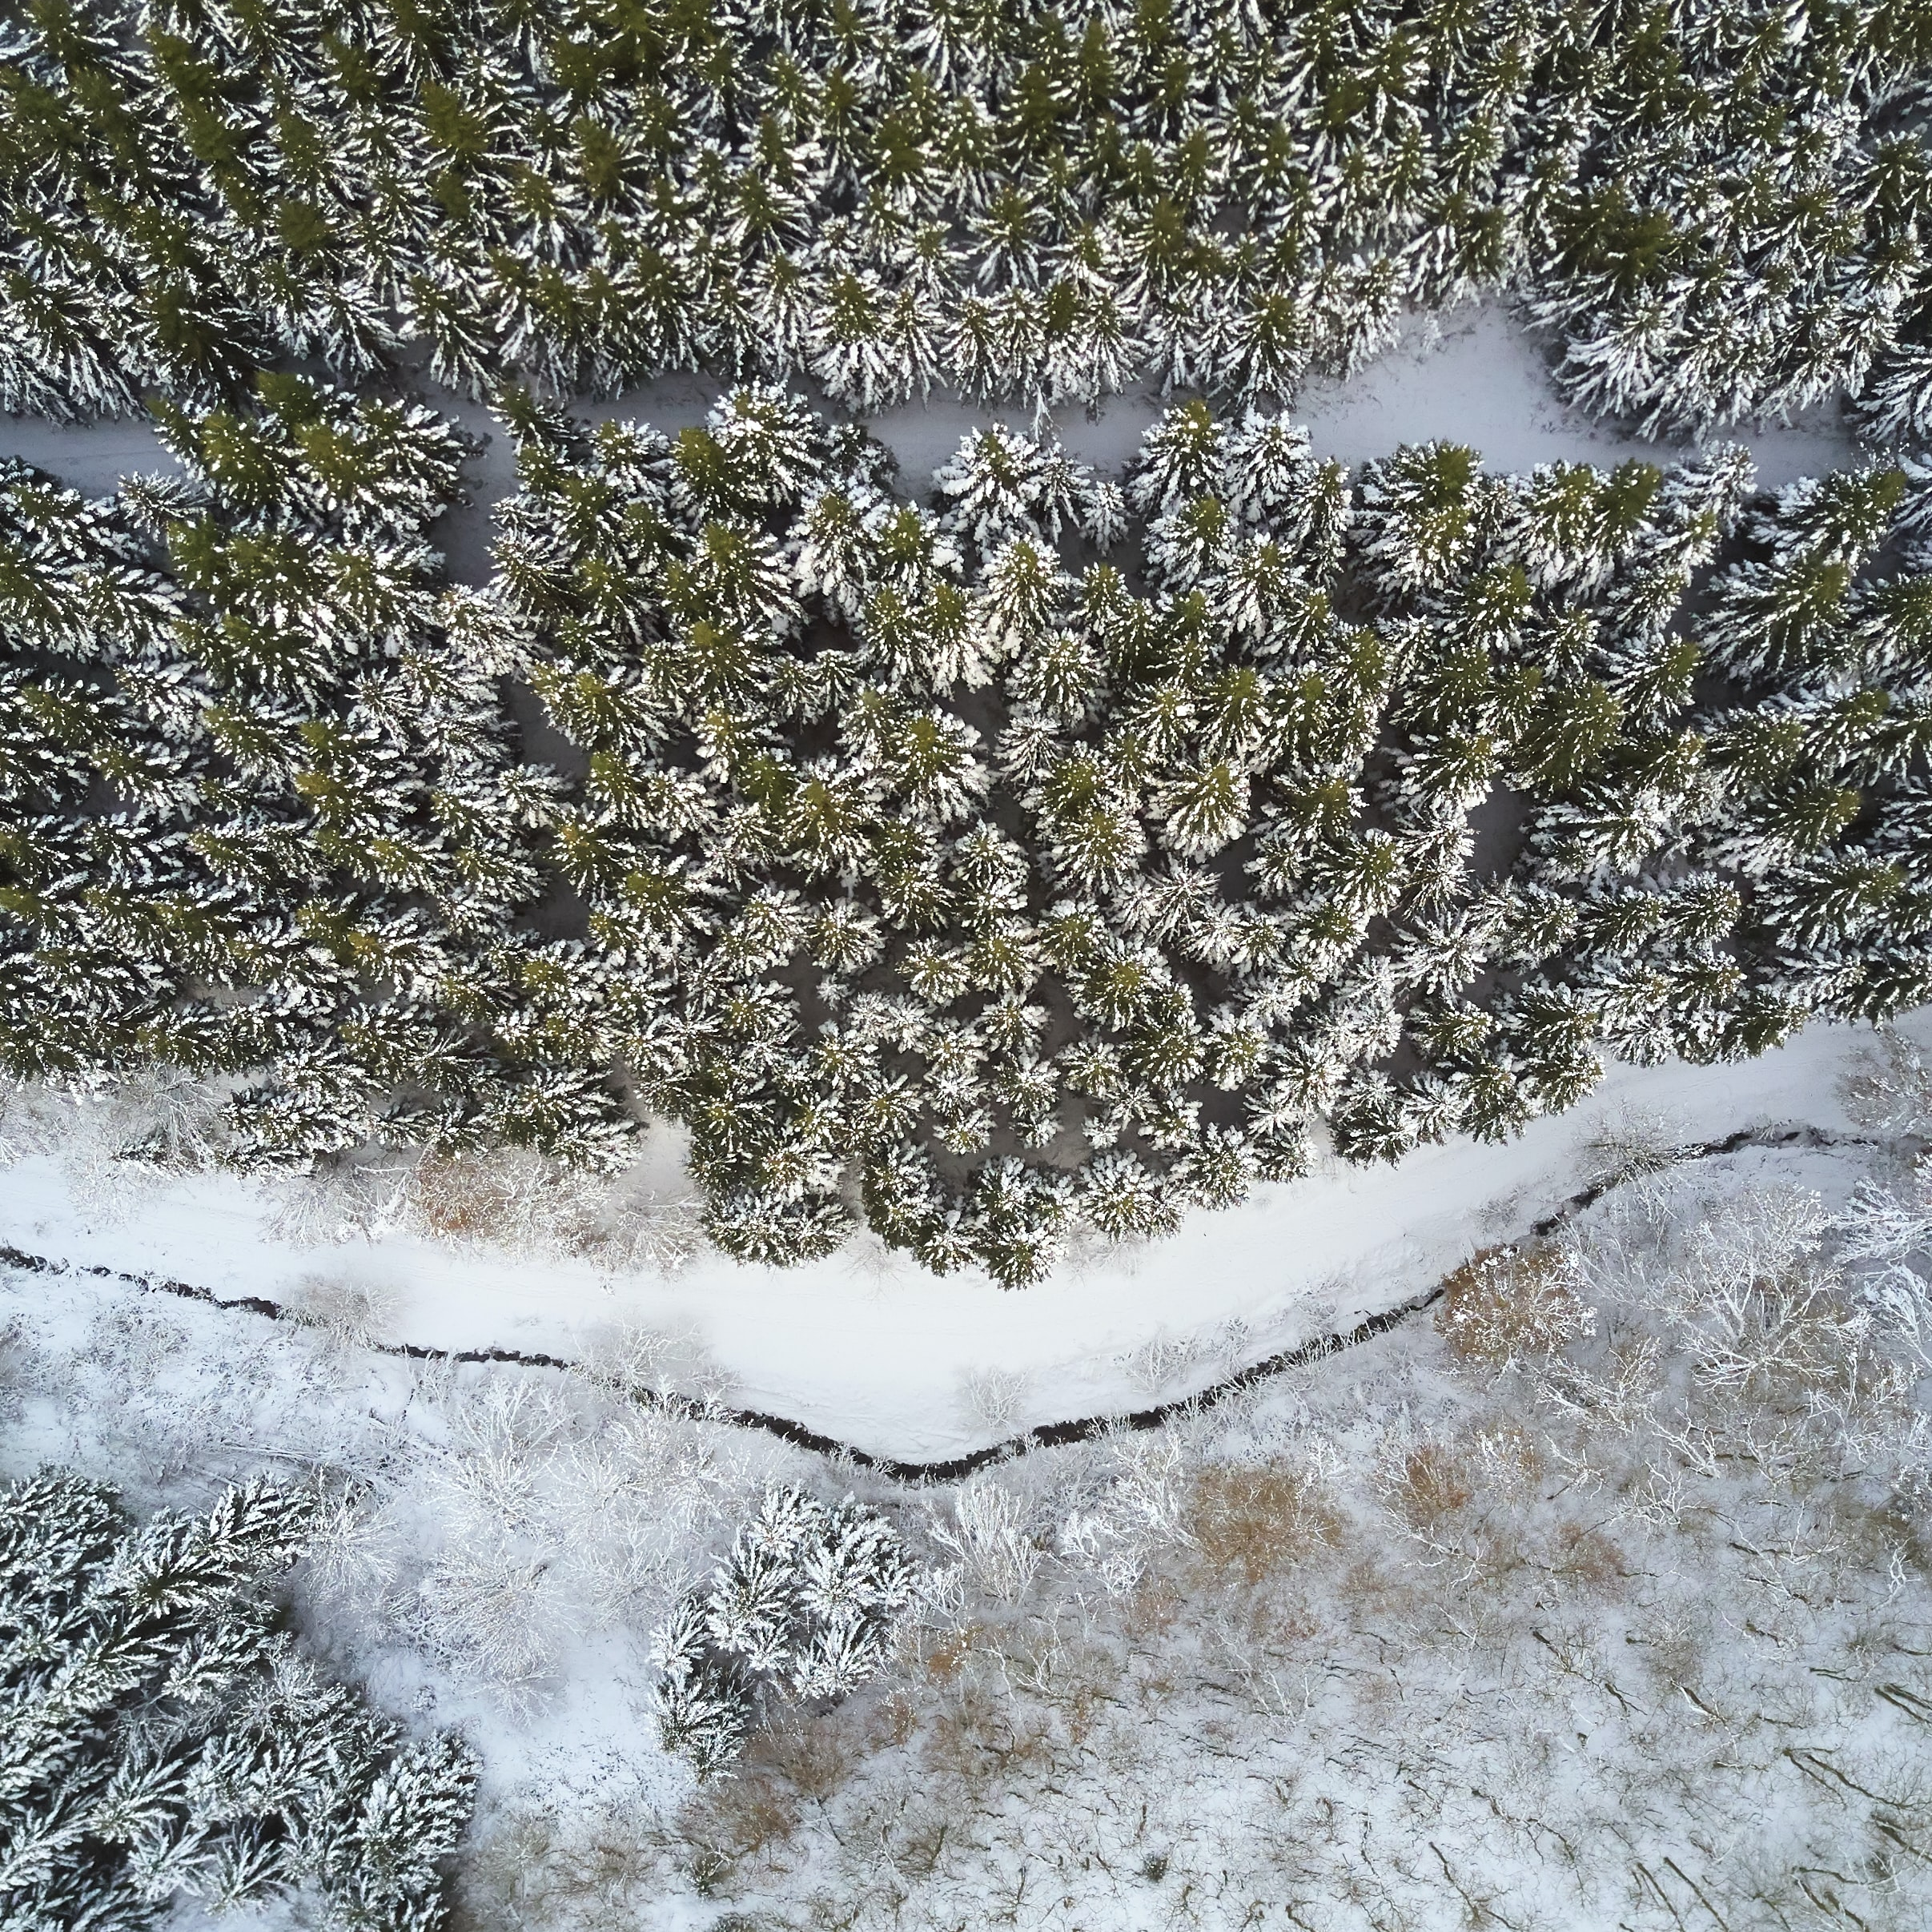 aerial view of land with pine trees covered by snow